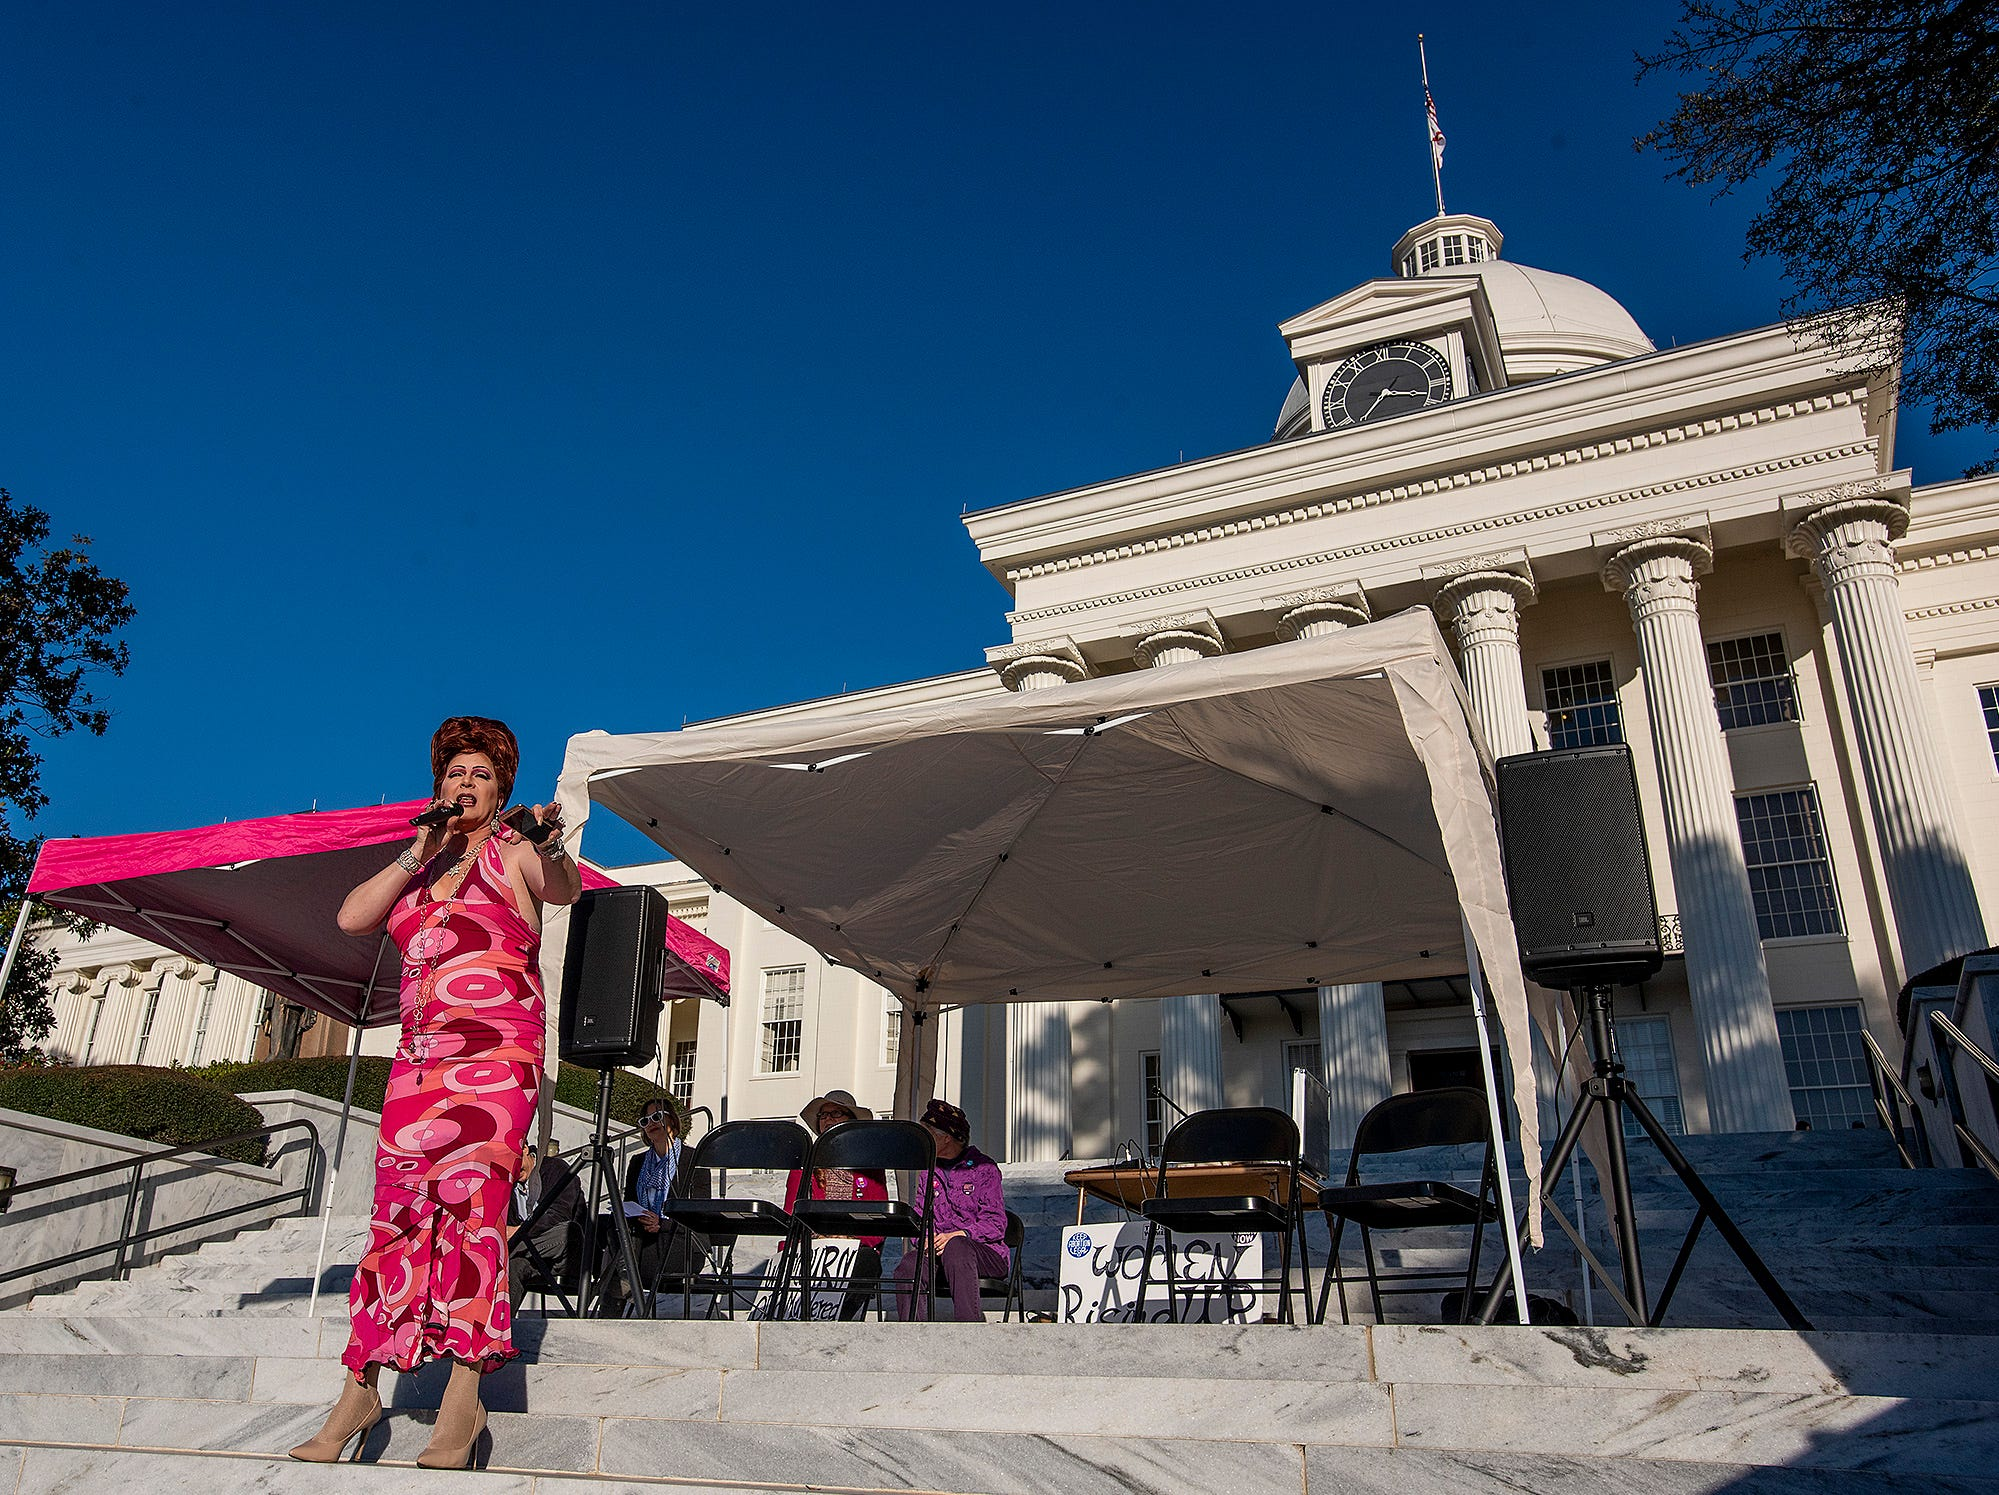 Ambrosia Starling acts as emcee on the capitol steps during the Montgomery Women's March in downtown Montgomery, Ala., on Saturday January 26, 2019.